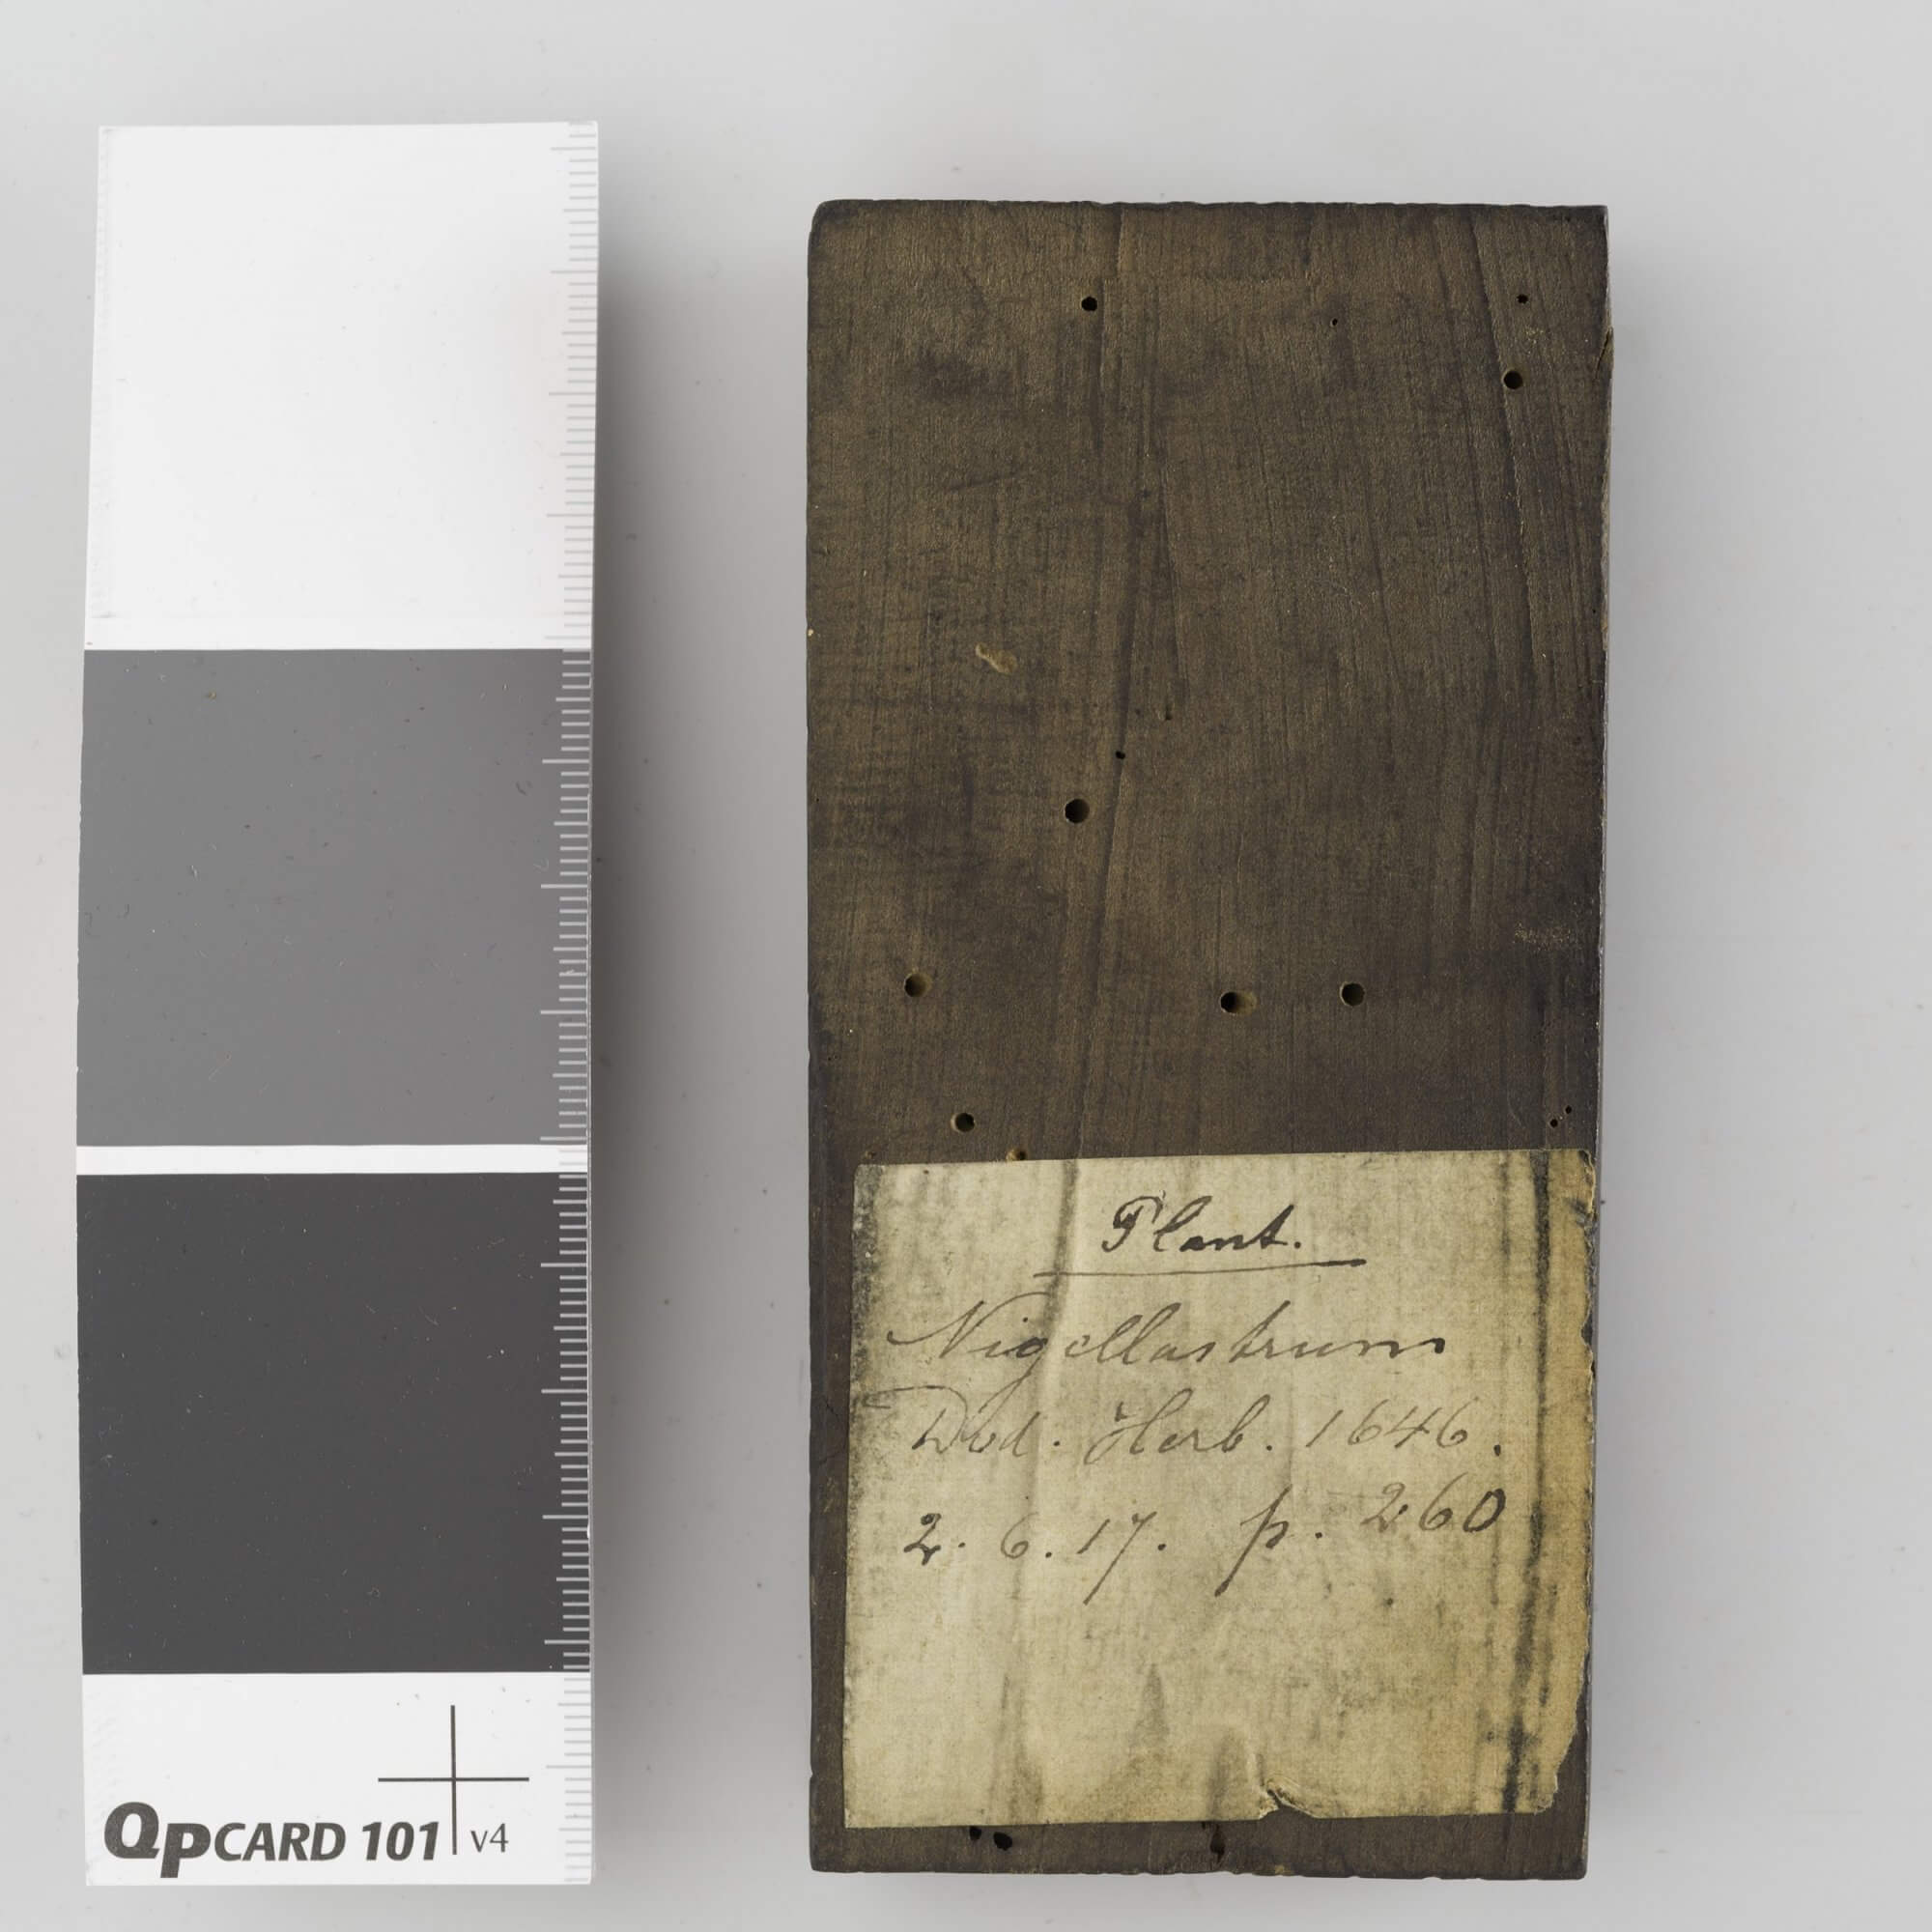 At some point in its history as part of the Plantin Moretus press, a paper label was affixed to the back of this woodblock in order to identify it.